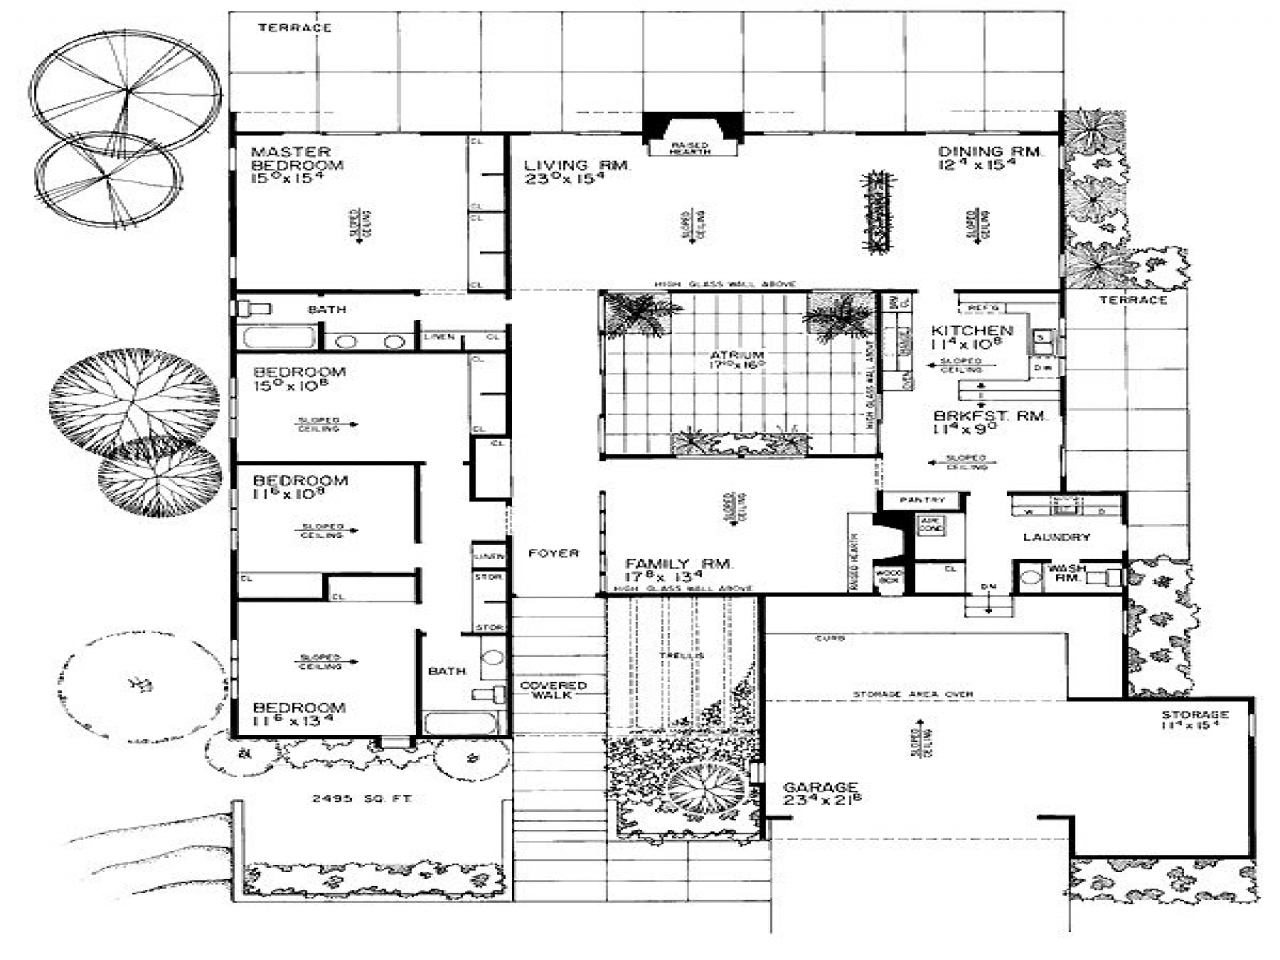 Eichler homes floor plans eichler homes in california for California ranch floor plans